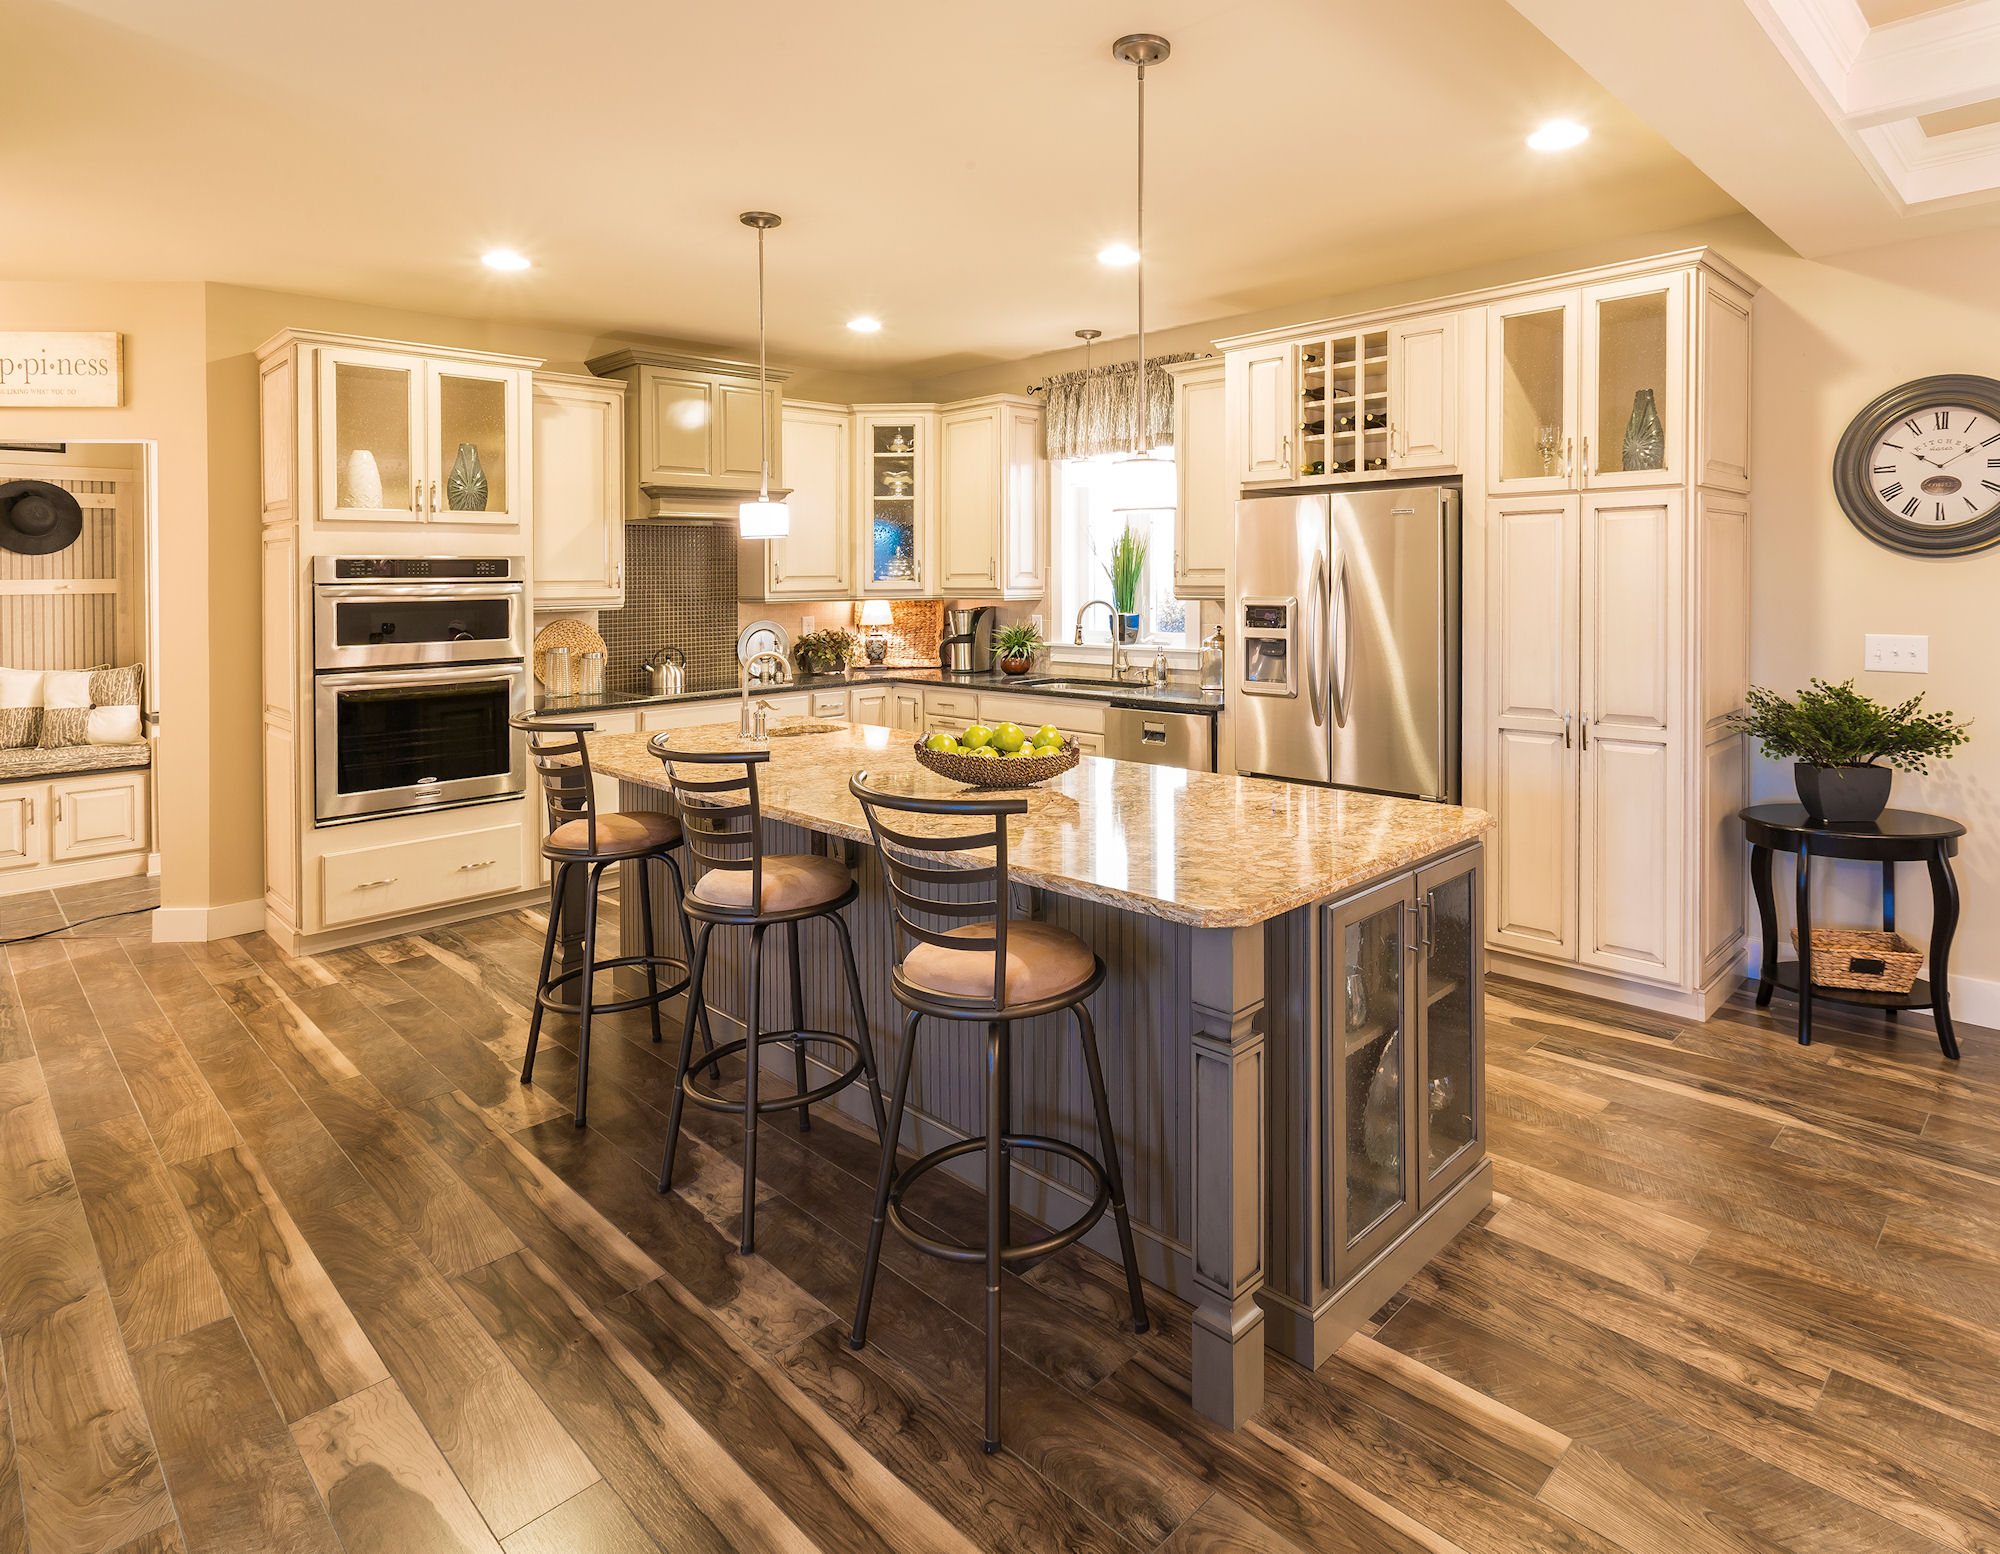 Ritz Craft Custom Homes Wins Two STARS Awards From The NCHBA